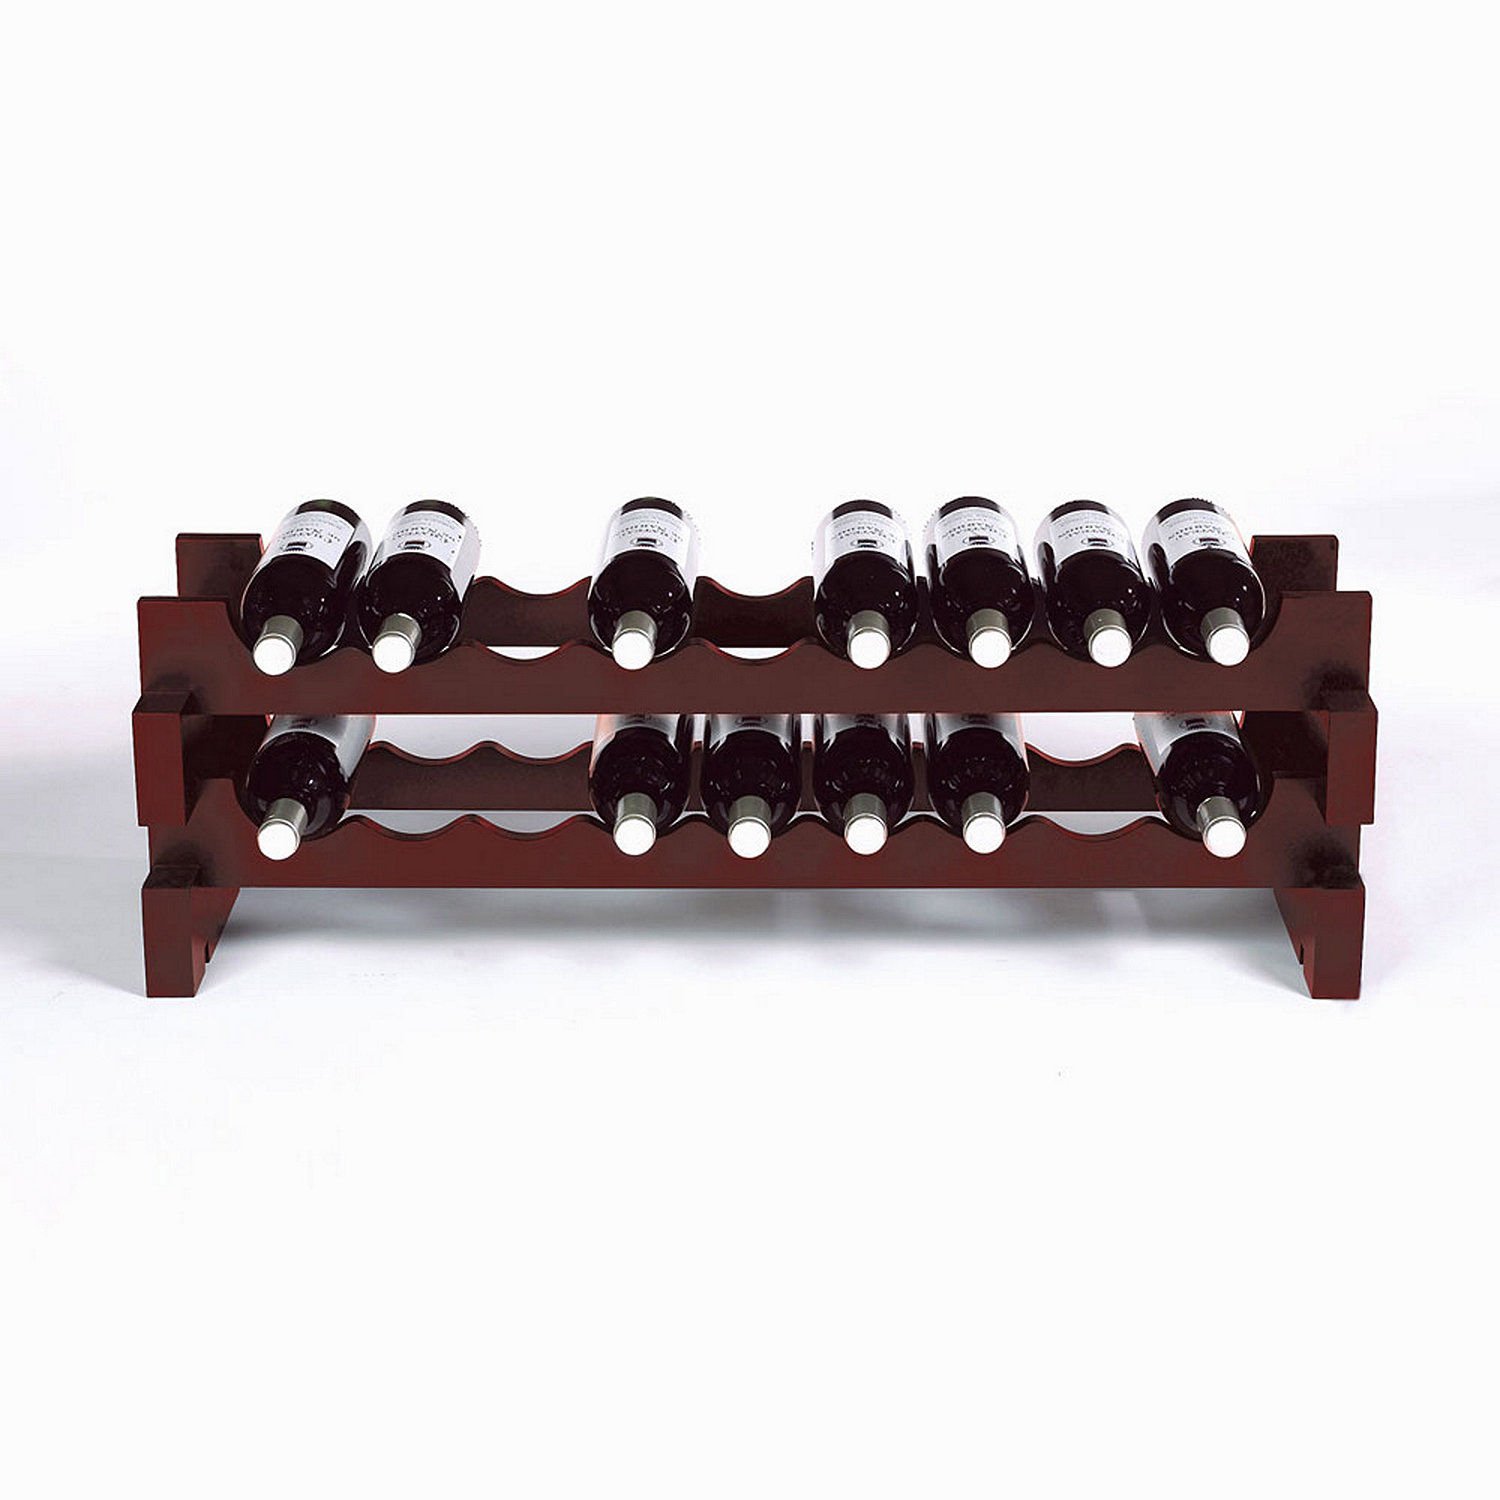 bottle stackable wine rack kit (mahogany)  wine enthusiast - preparing zoom